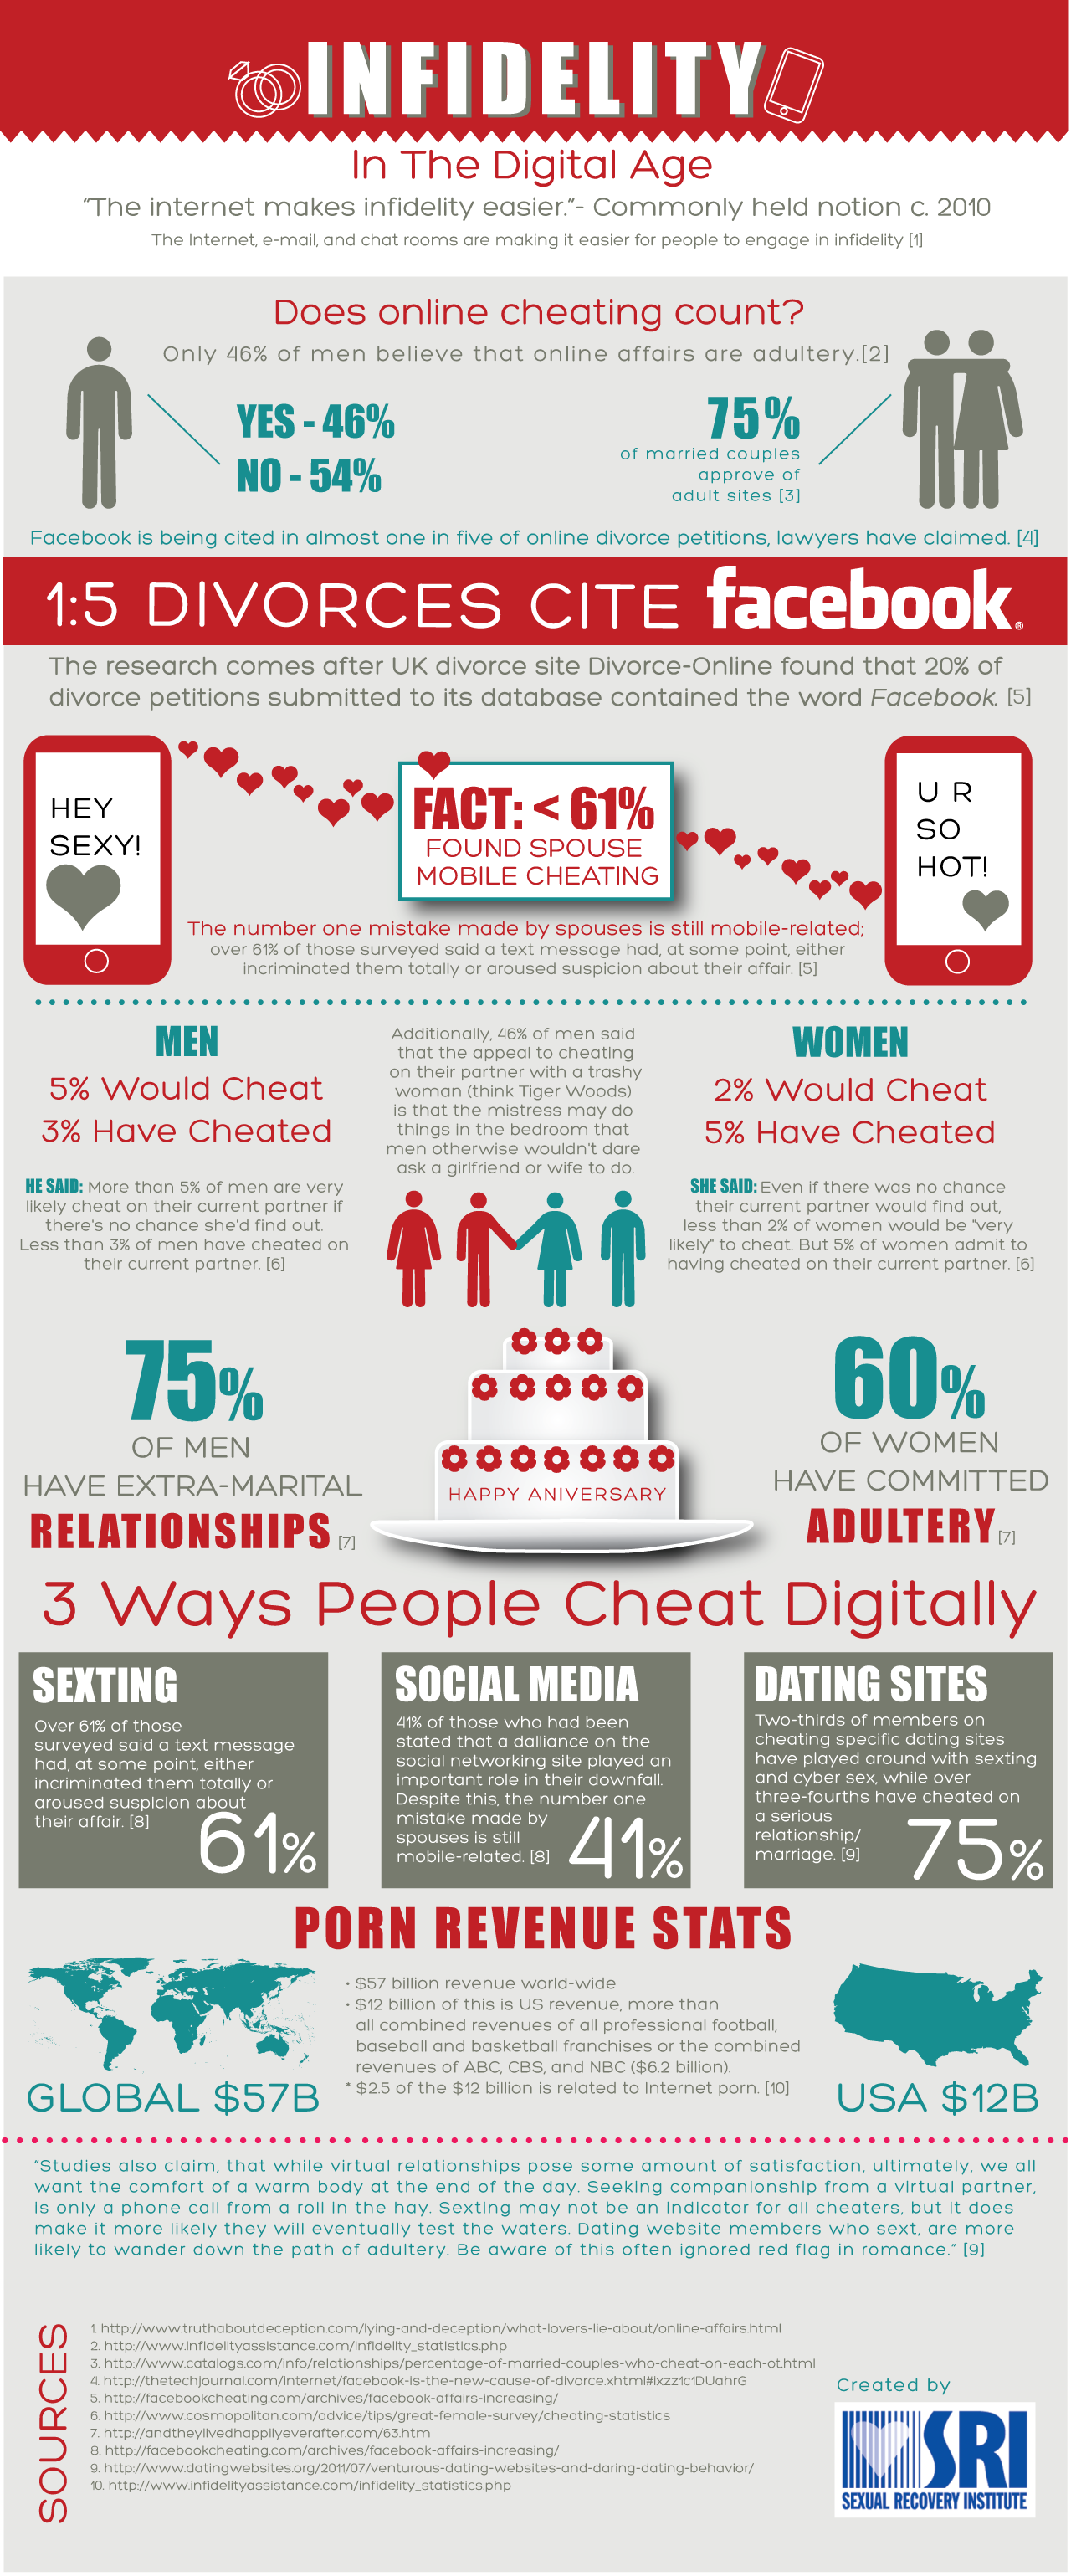 Infidelity in the Digital Age